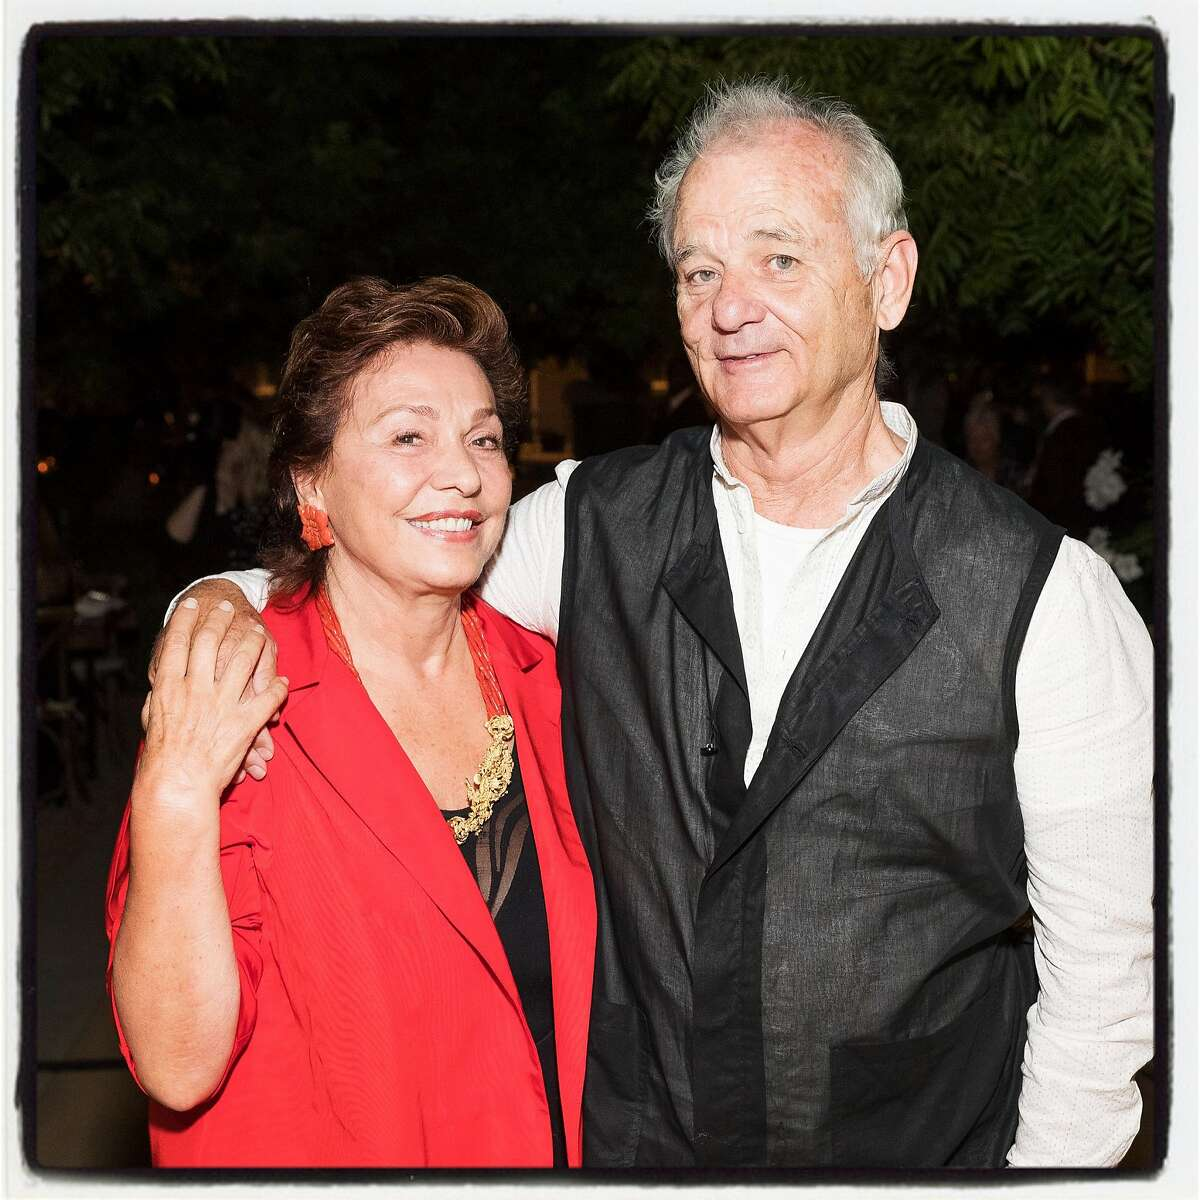 Maria Manetti Shrem and Bill Murray at Trinchero for a Festival Napa Valley Patron Dinner. July 20th, 2017.